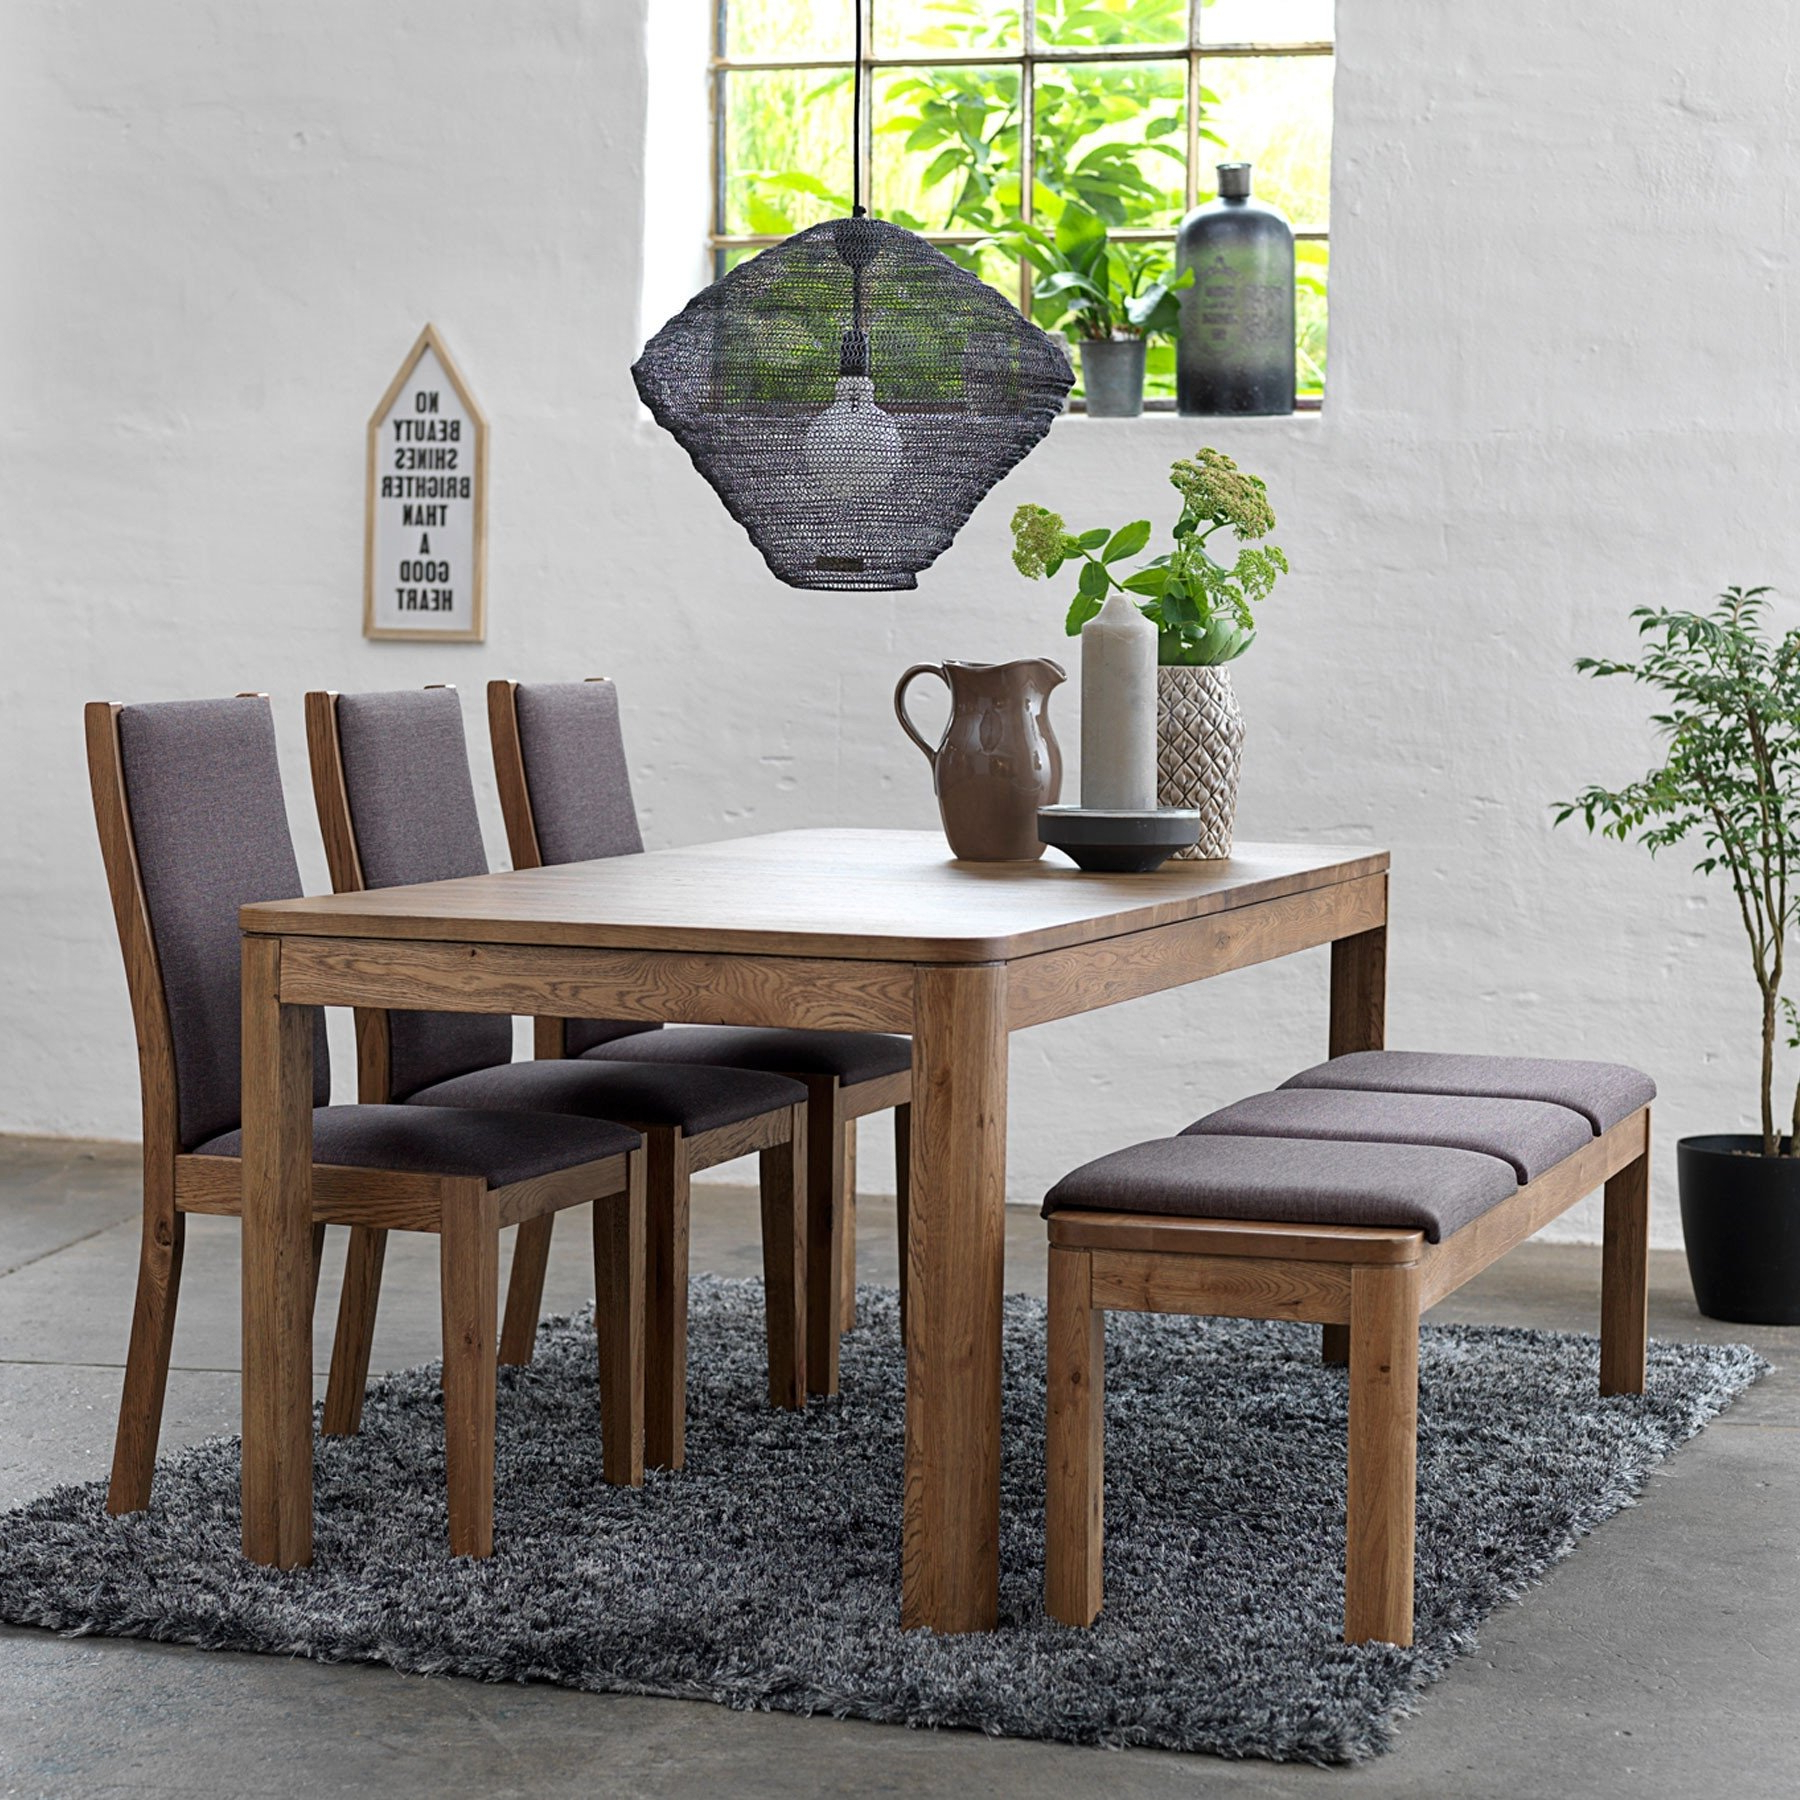 50+ Dining Table With Bench You'll Love In 2020 – Visual Hunt Intended For Most Up To Date Rustic Country 8 Seating Casual Dining Tables (View 3 of 30)